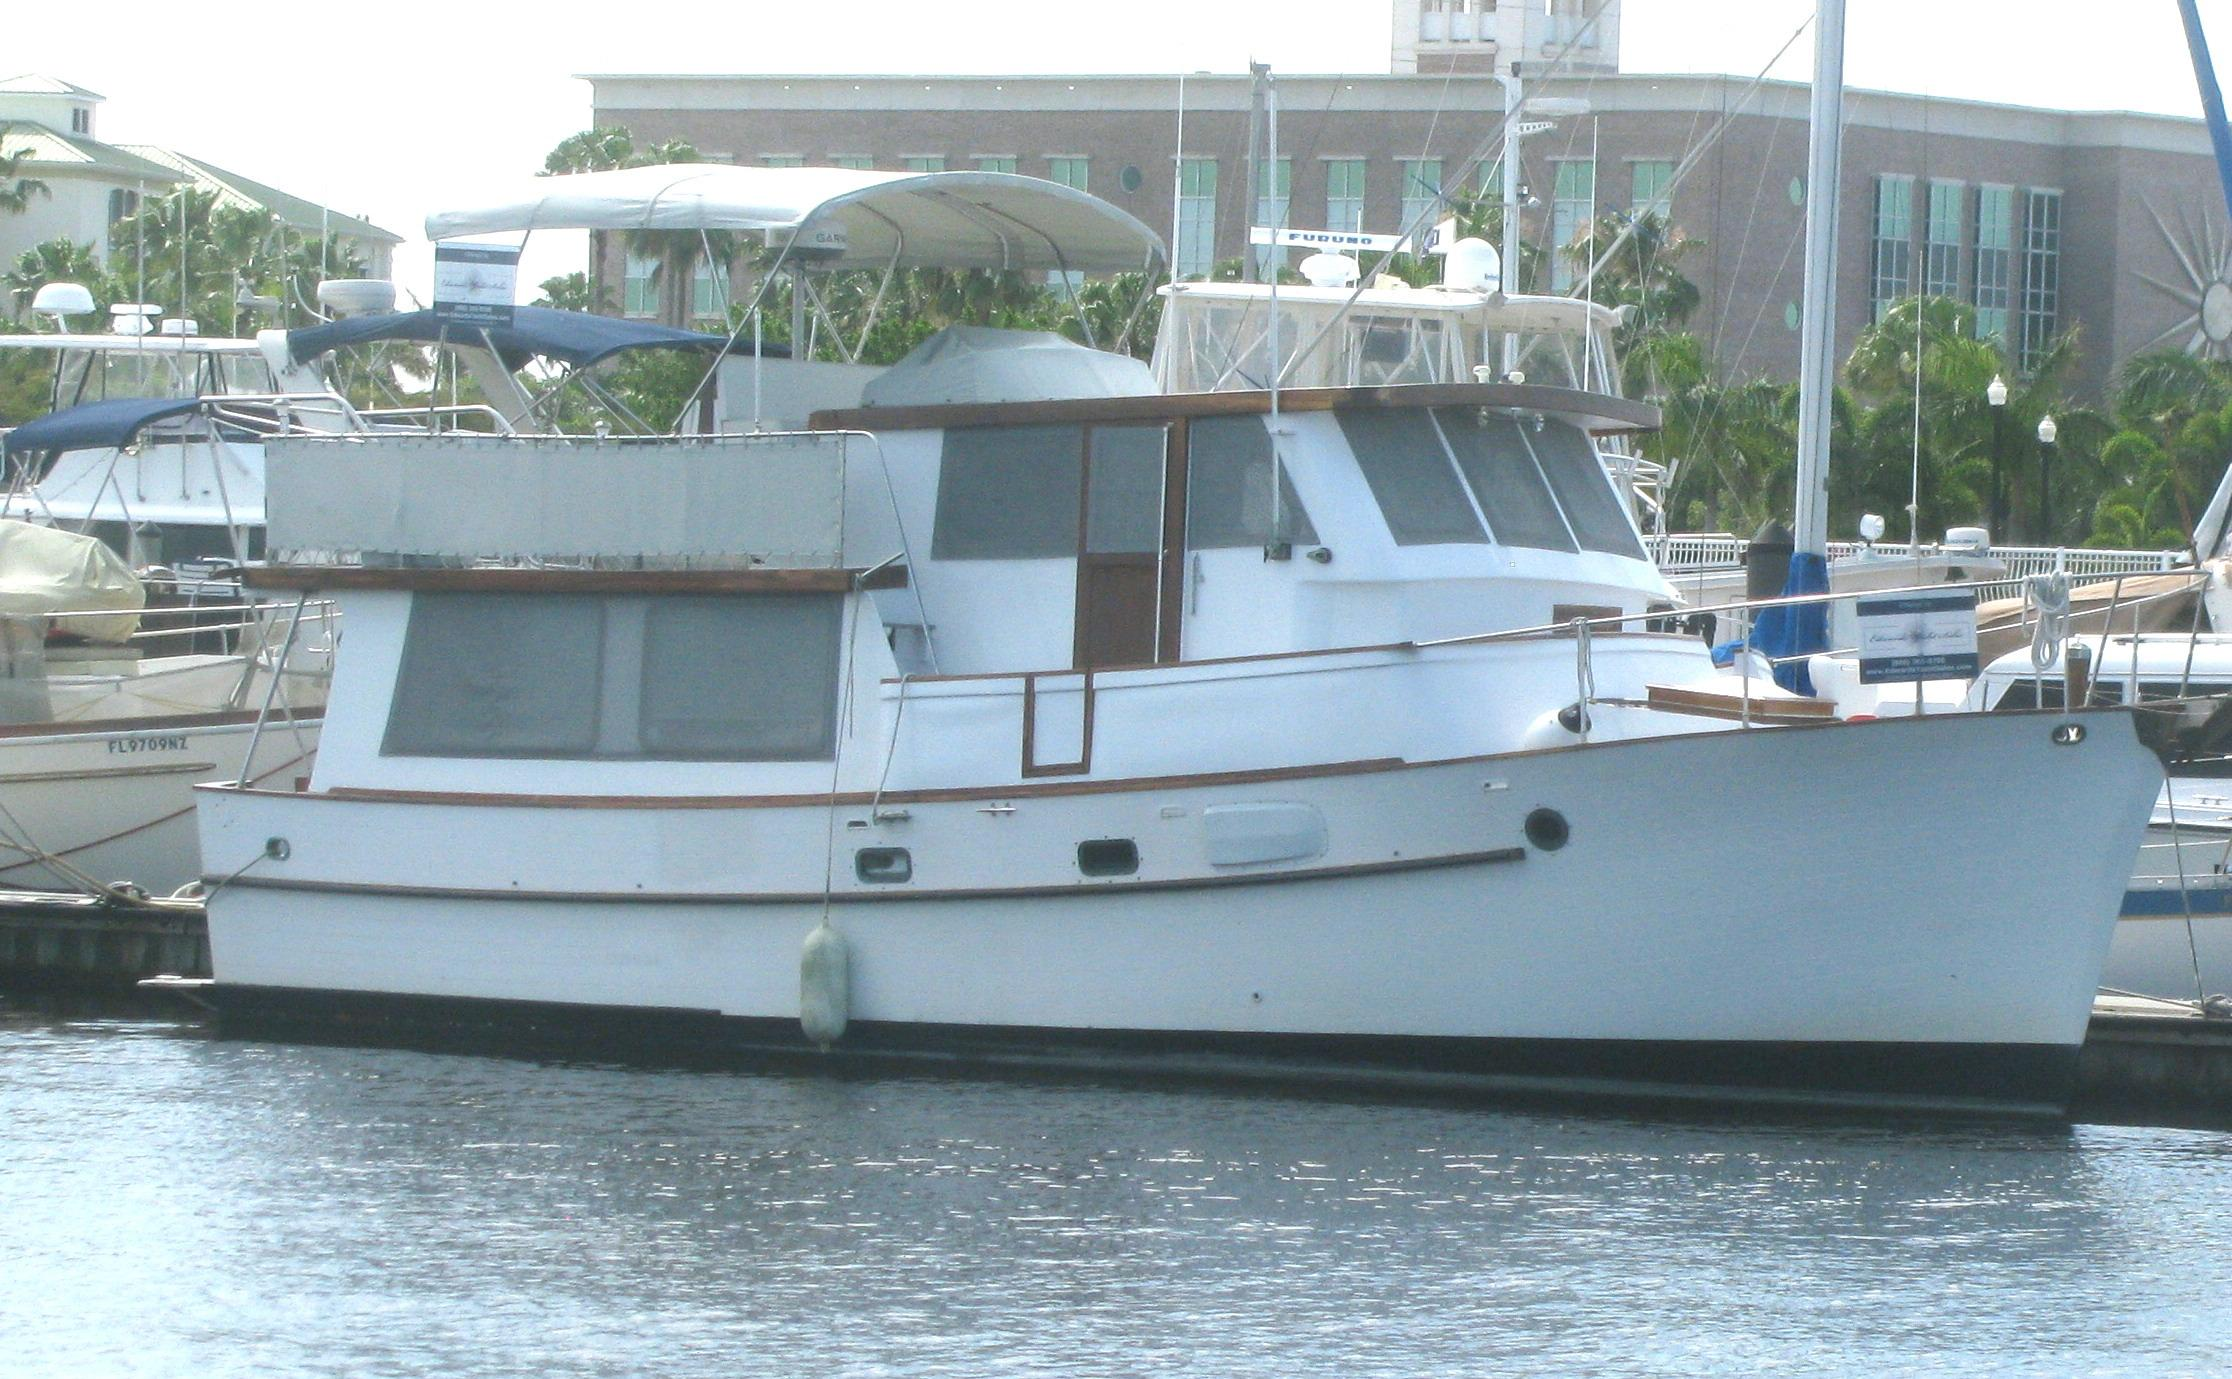 40' Raised Pilothouse Trawler,Krogen,Tug 1980 Long Range Cruiser